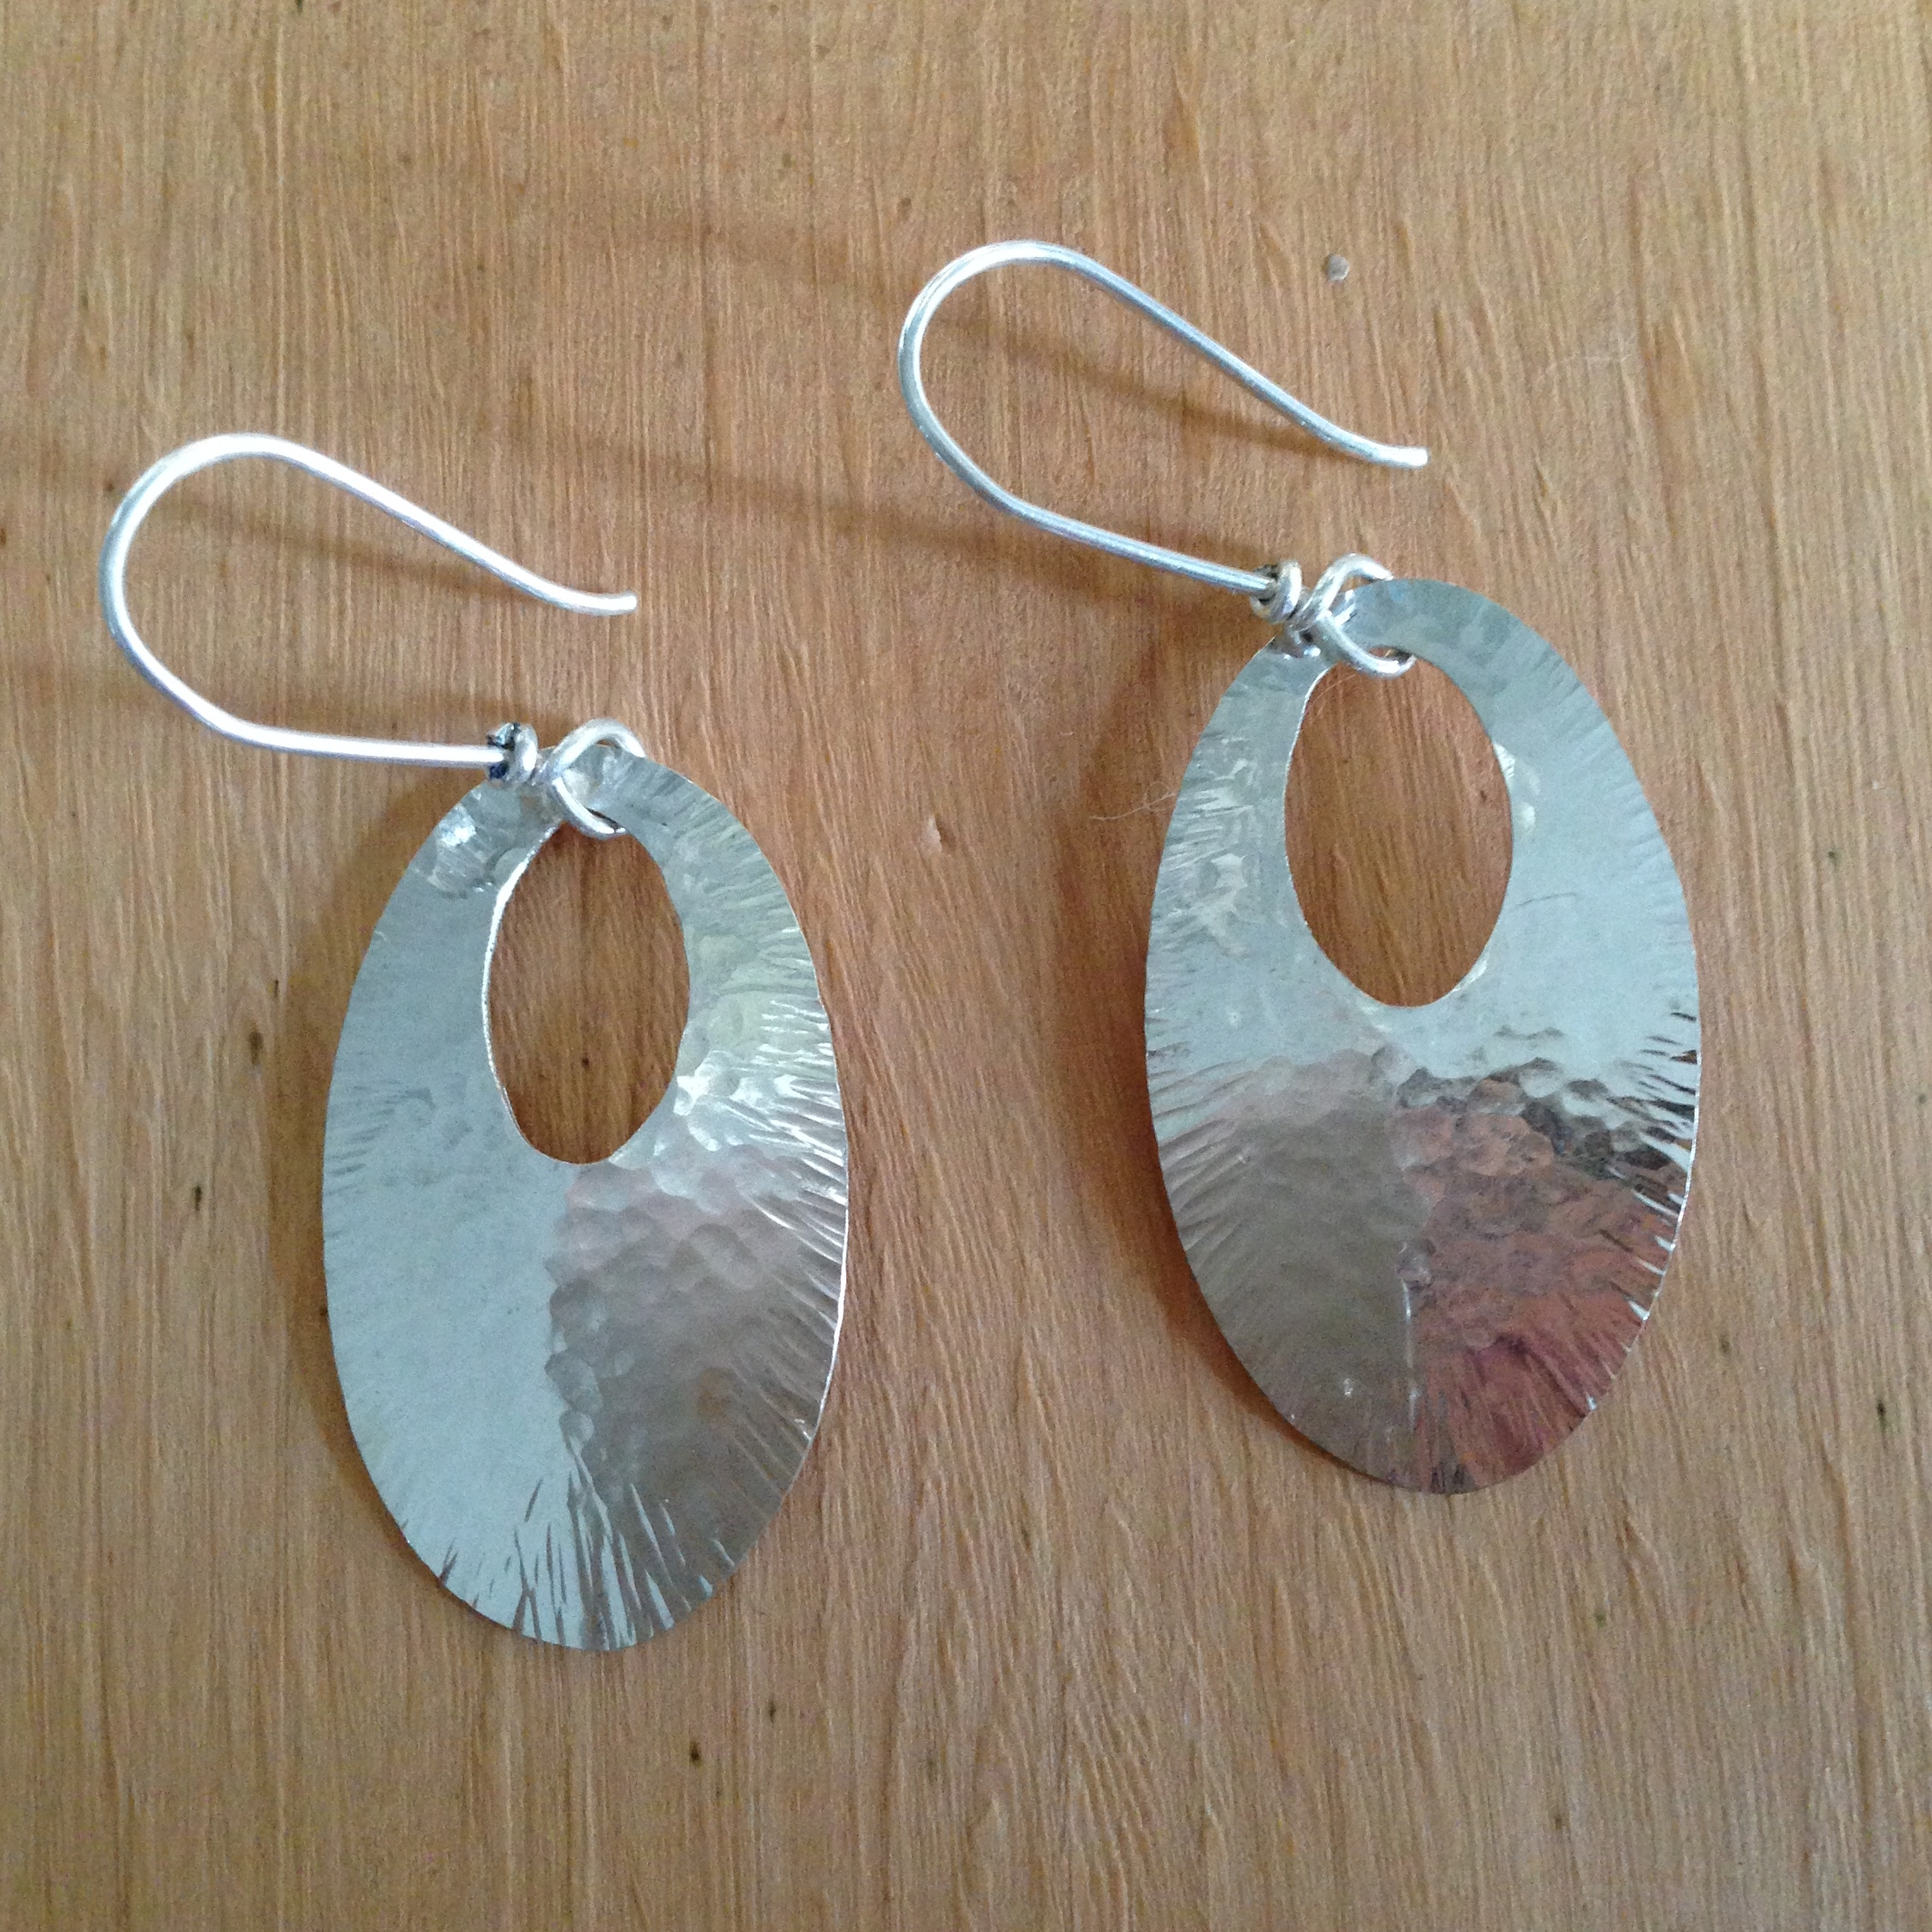 textured-oval-earrings